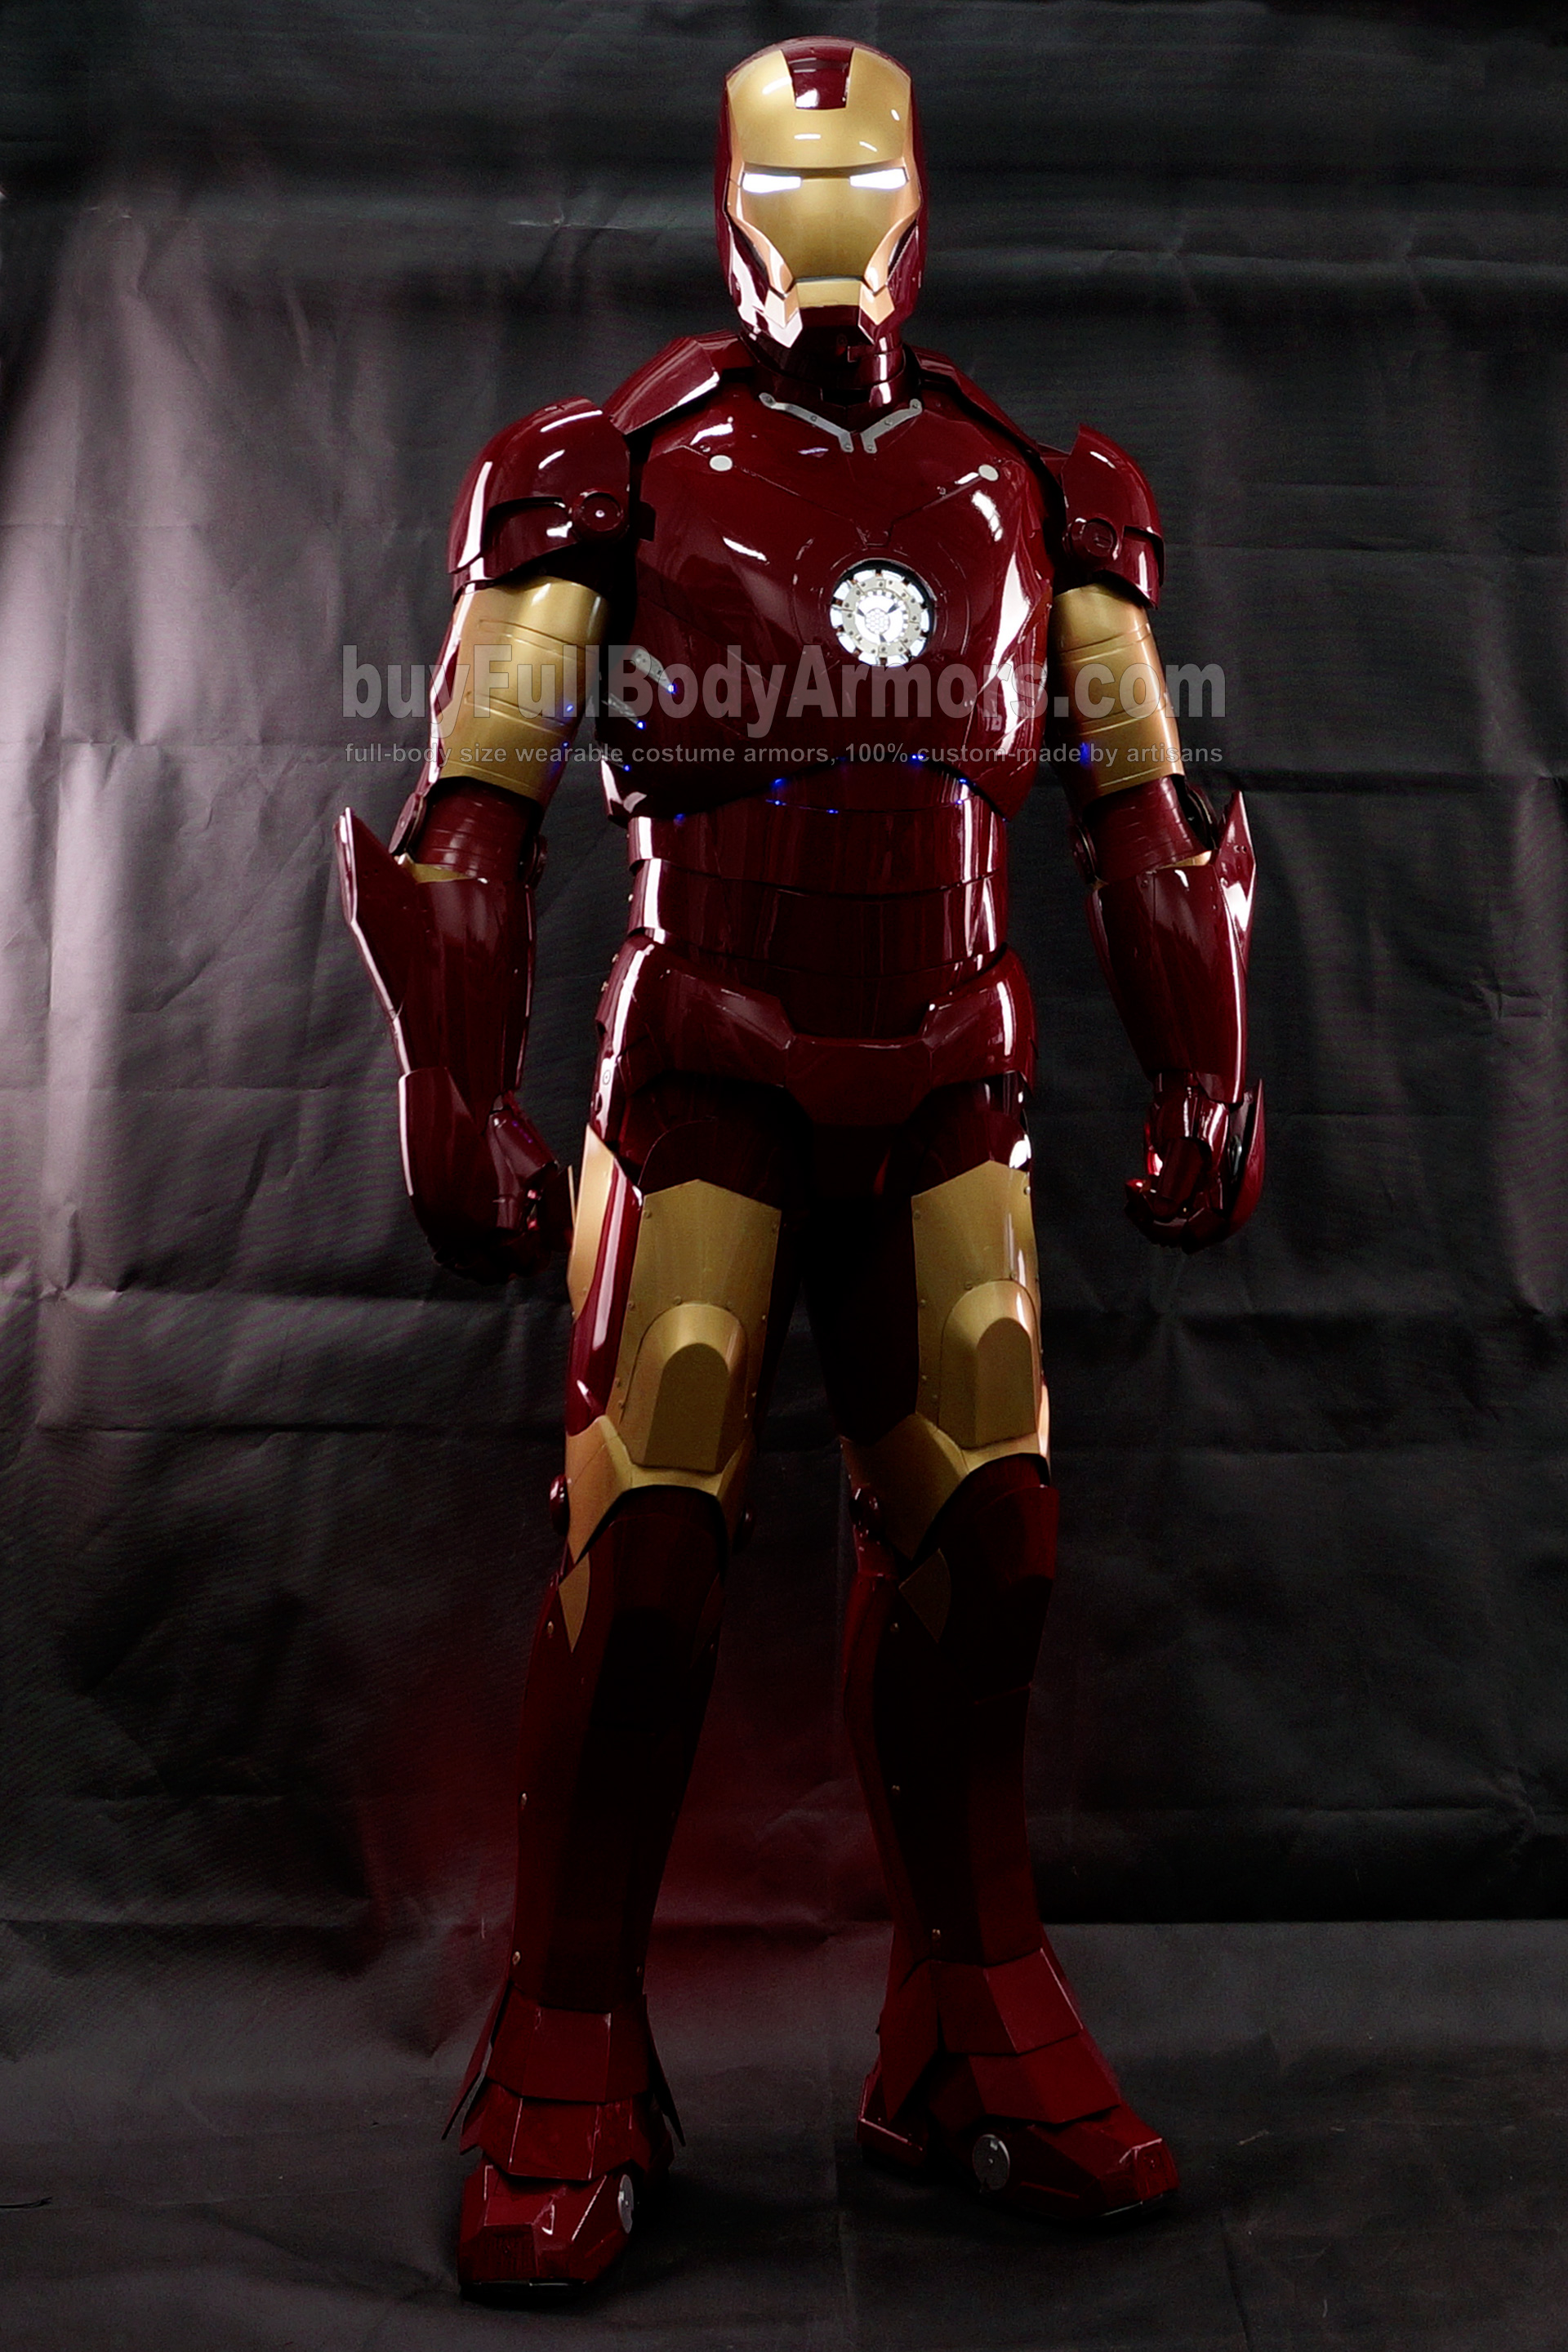 High Definition Photos of the Wearable Iron Man Mark 3 III Armor Costume Suit 2